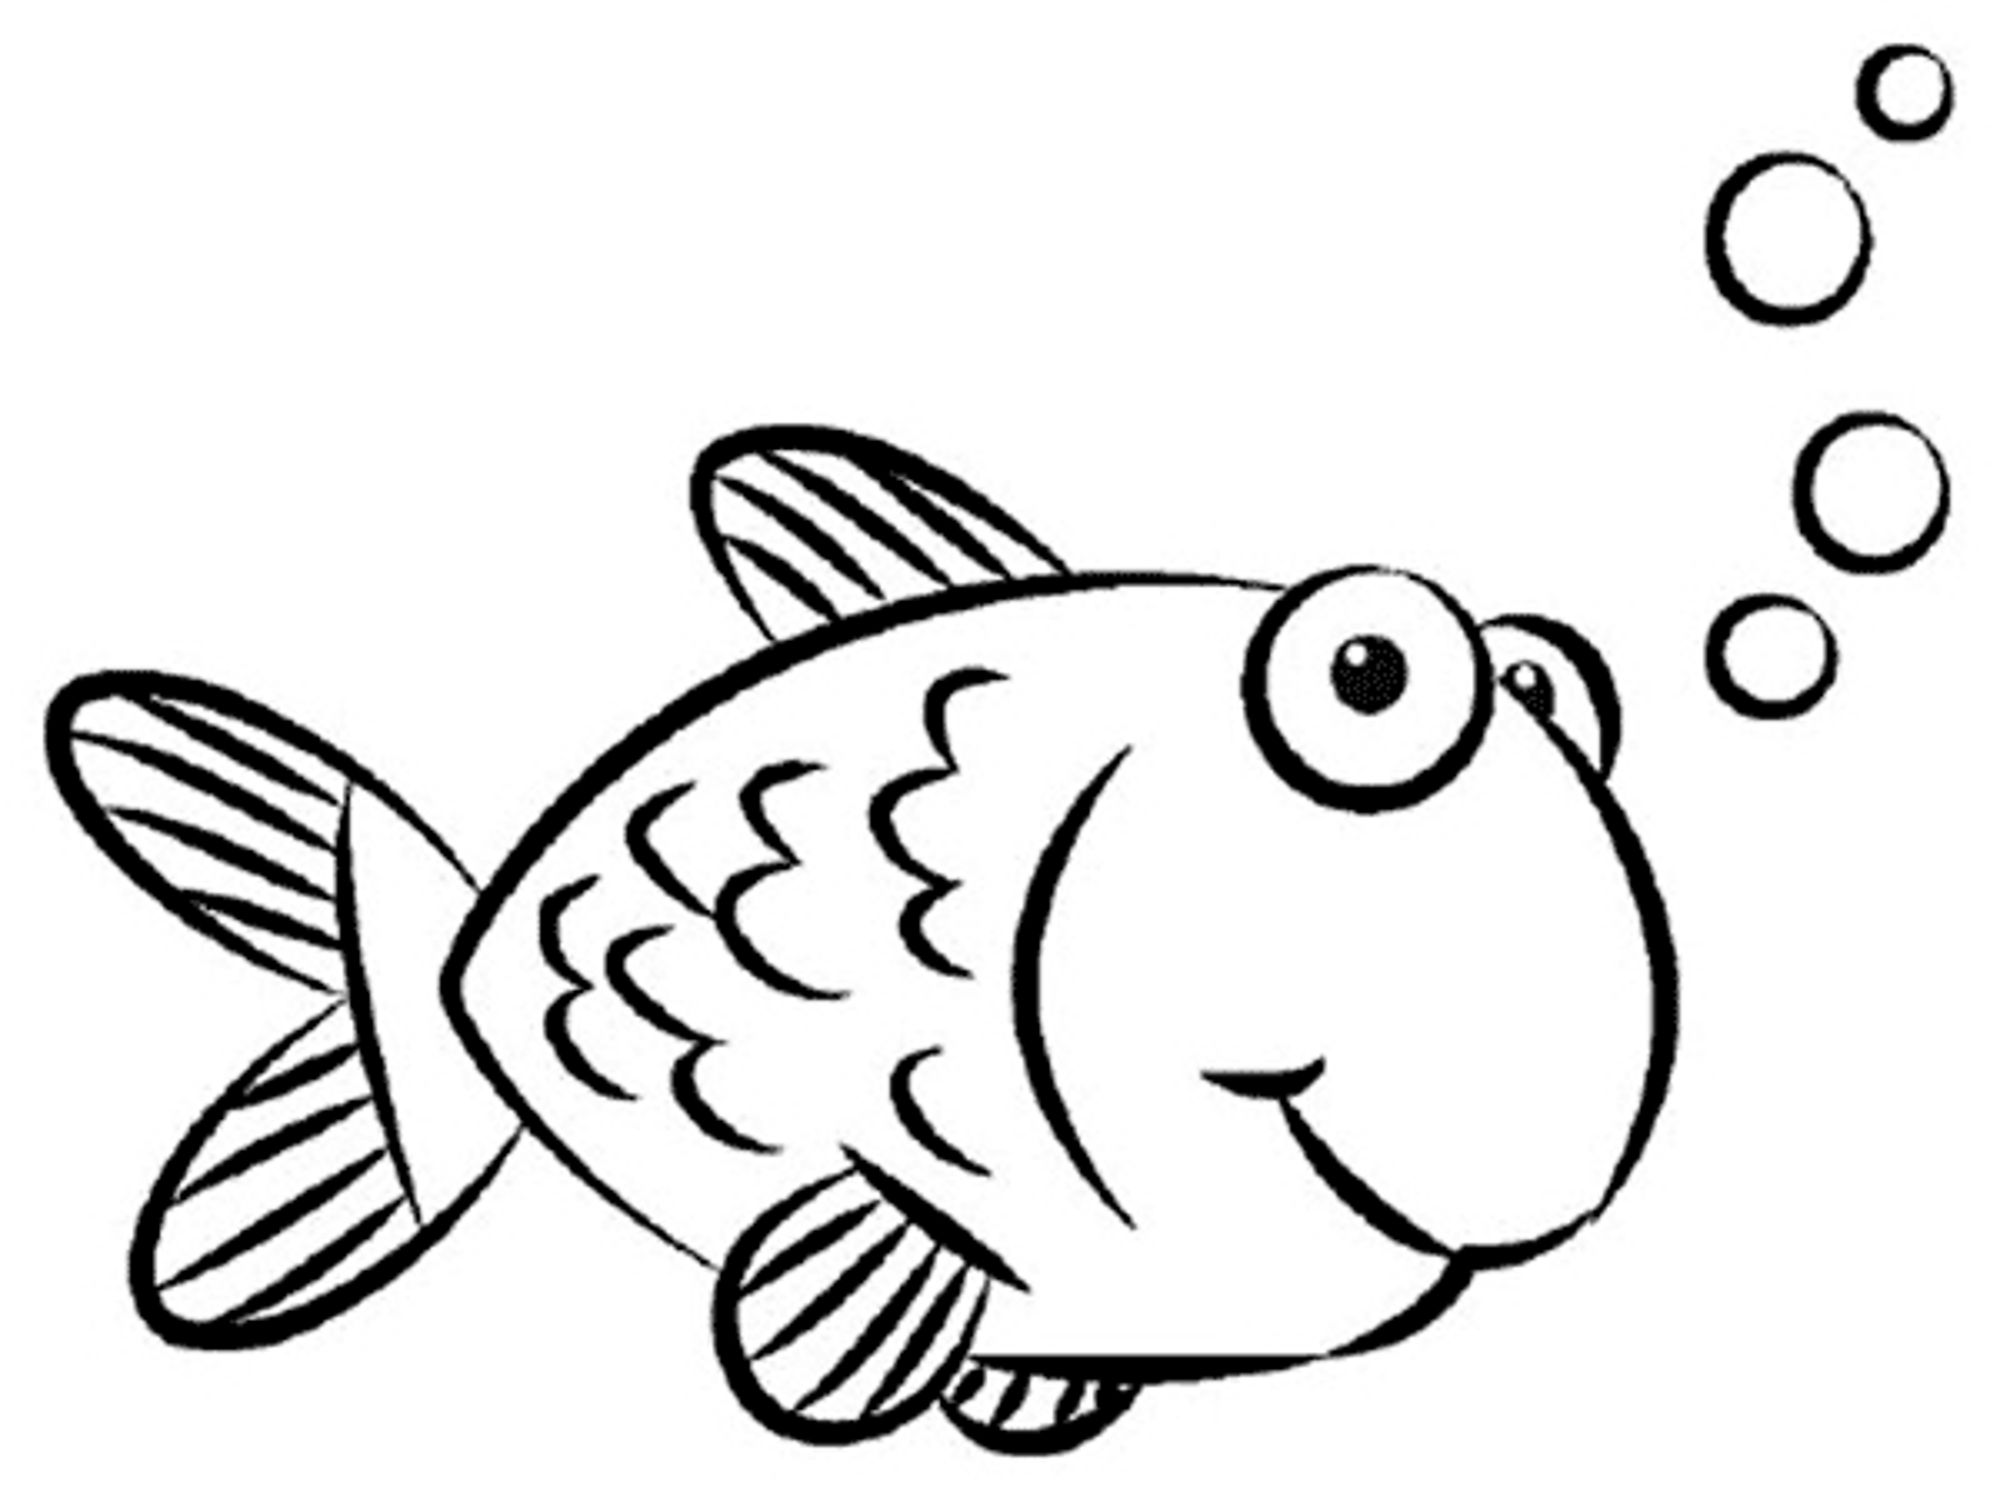 2000x1510 Simple Rocket Coloring Page For Toddlers Pages Kids Printable Book